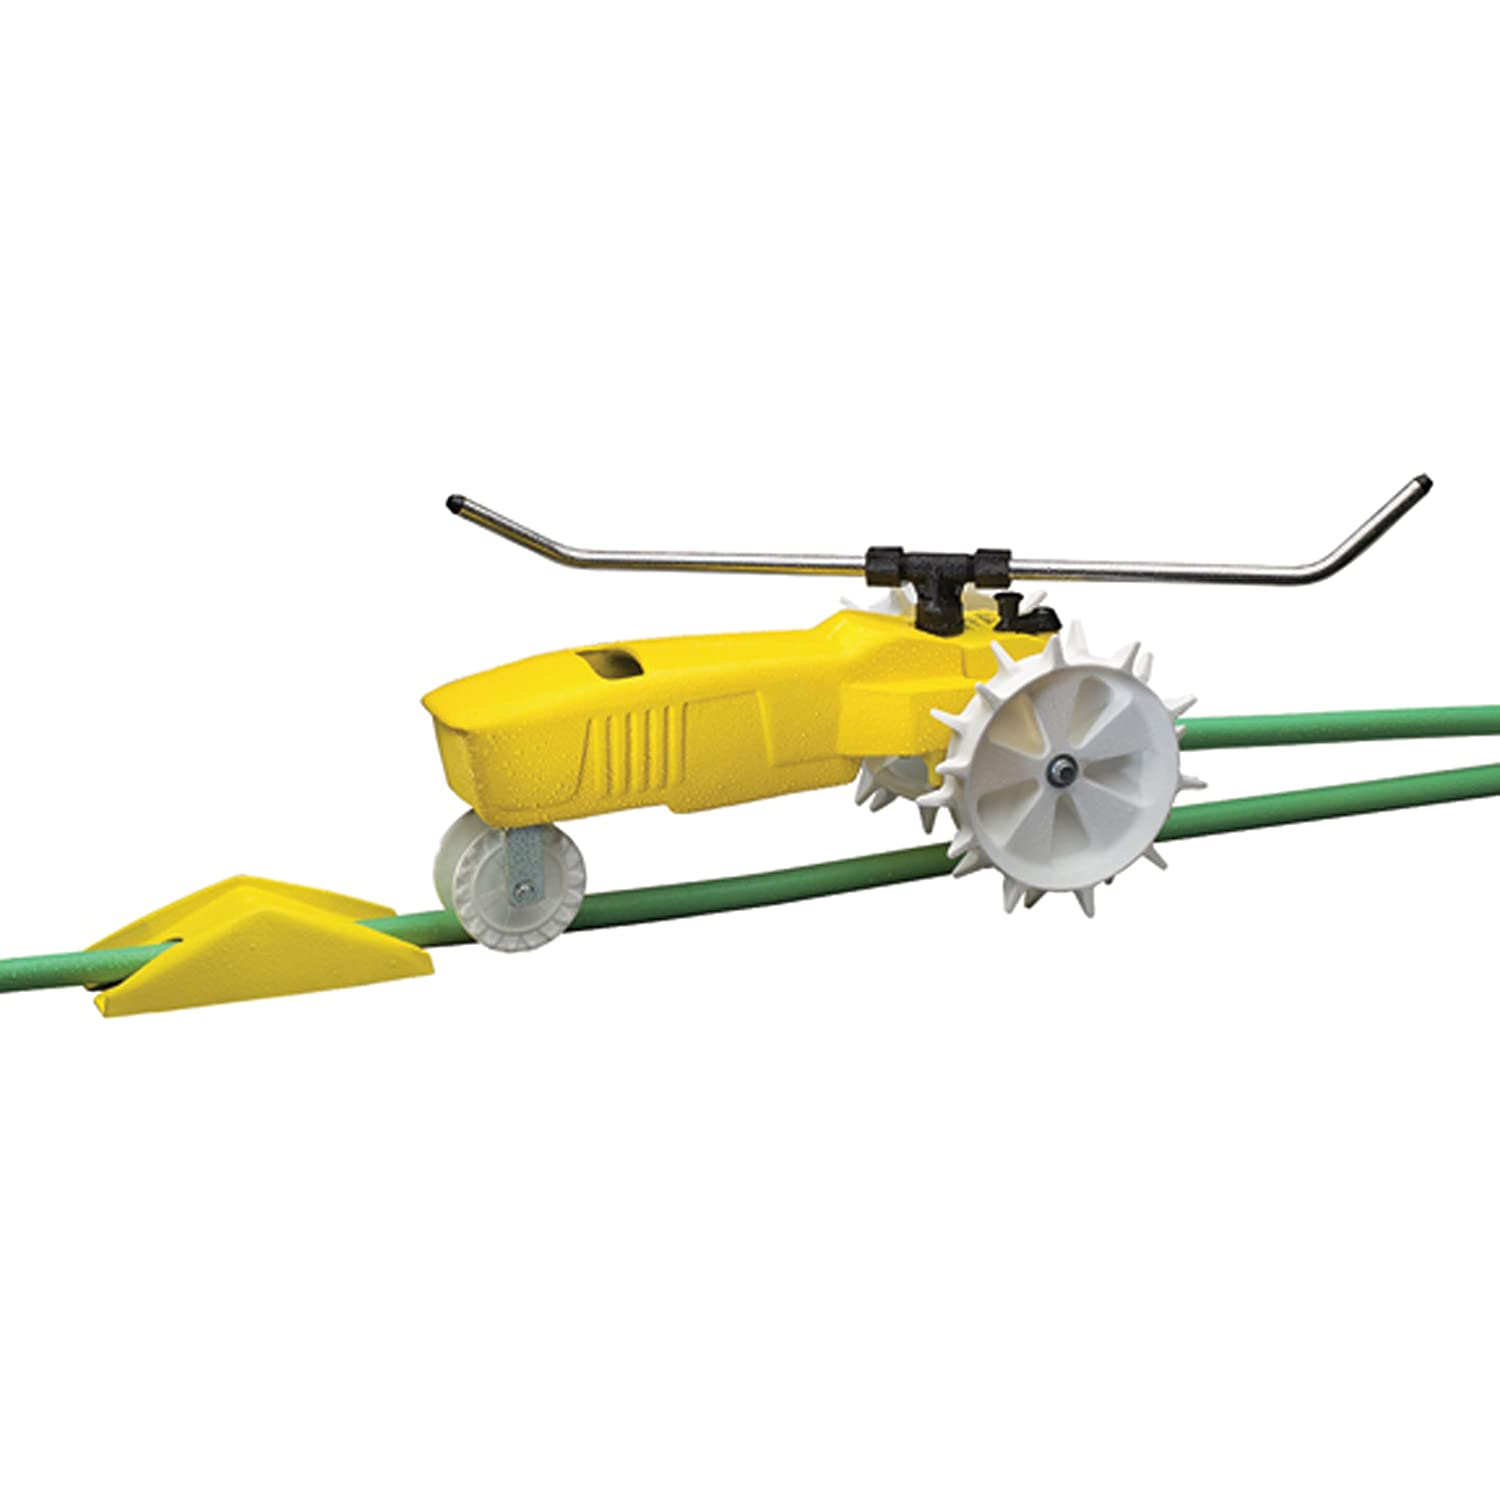 Nelson's Raintrain Traveling Sprinkler Model# 818653-1001